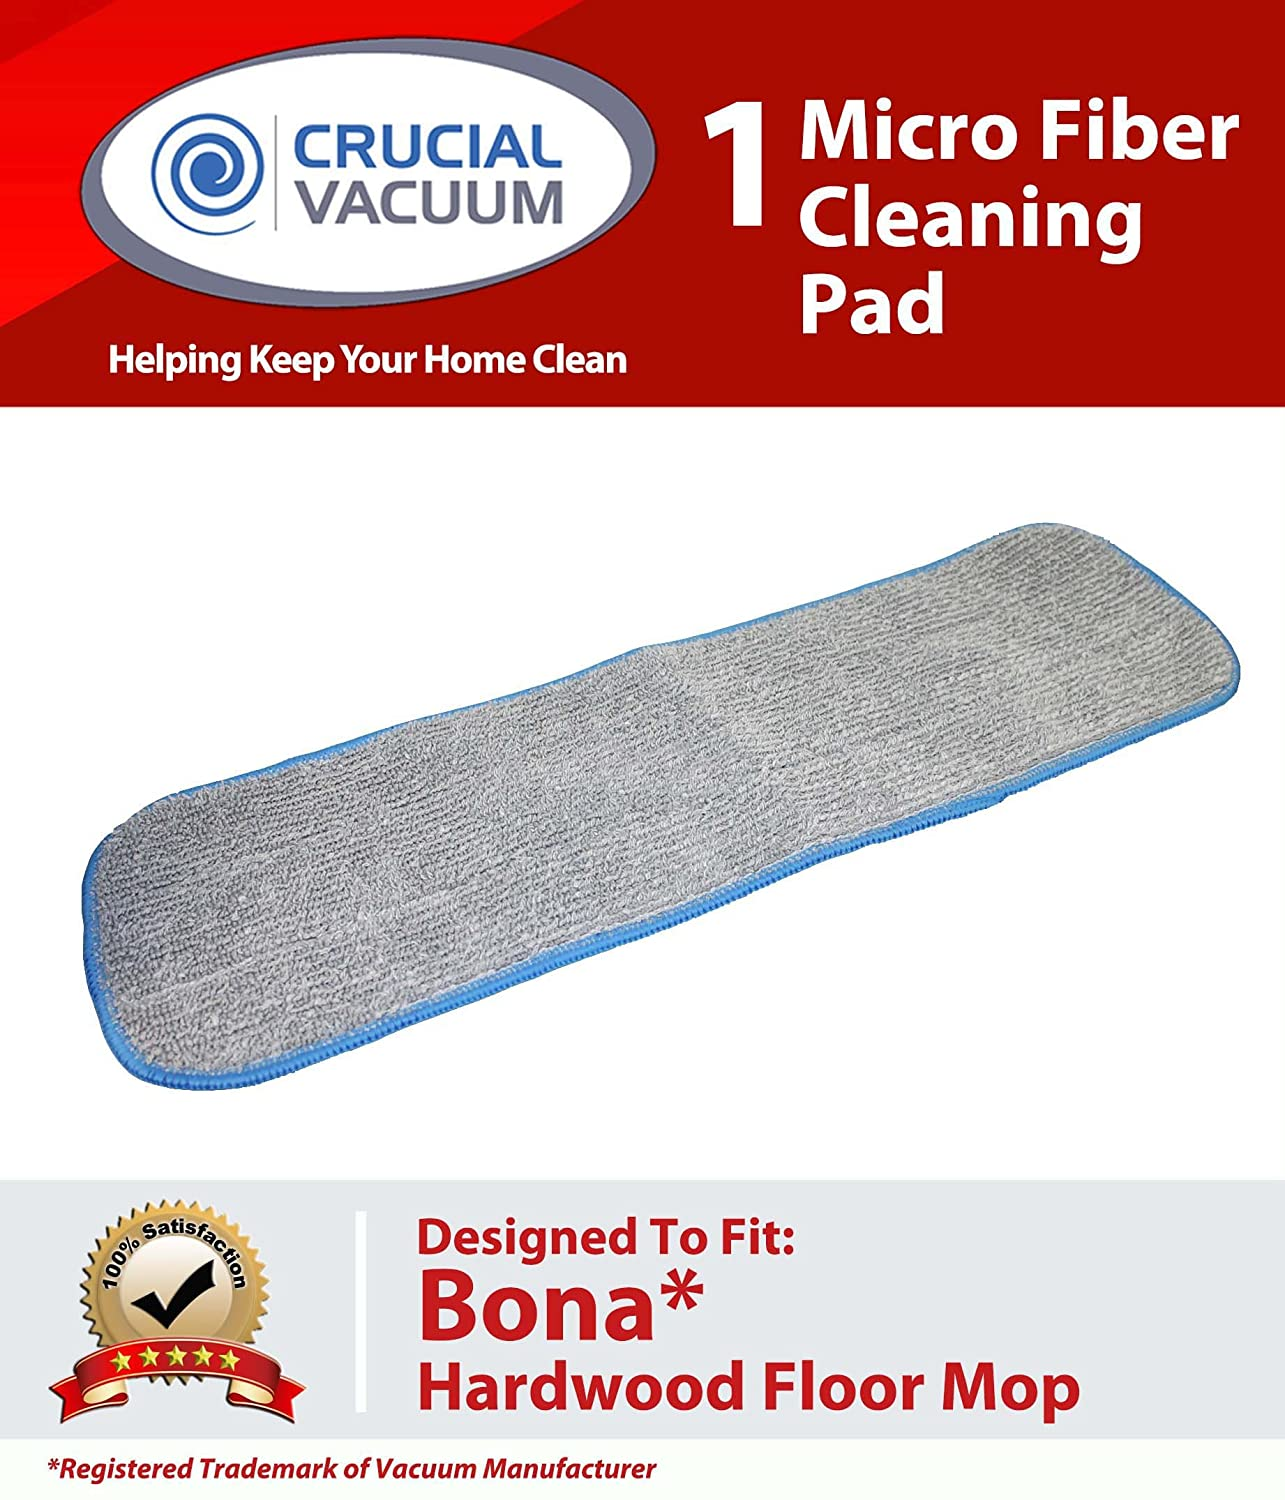 Crucial Vacuum Bona Hardwood Floor Micro Fiber Cleaning Pad fits Bona Hardwood Floor Mops, 15in Mohawk, Bona, Orange Glow and Many More at Sears.com